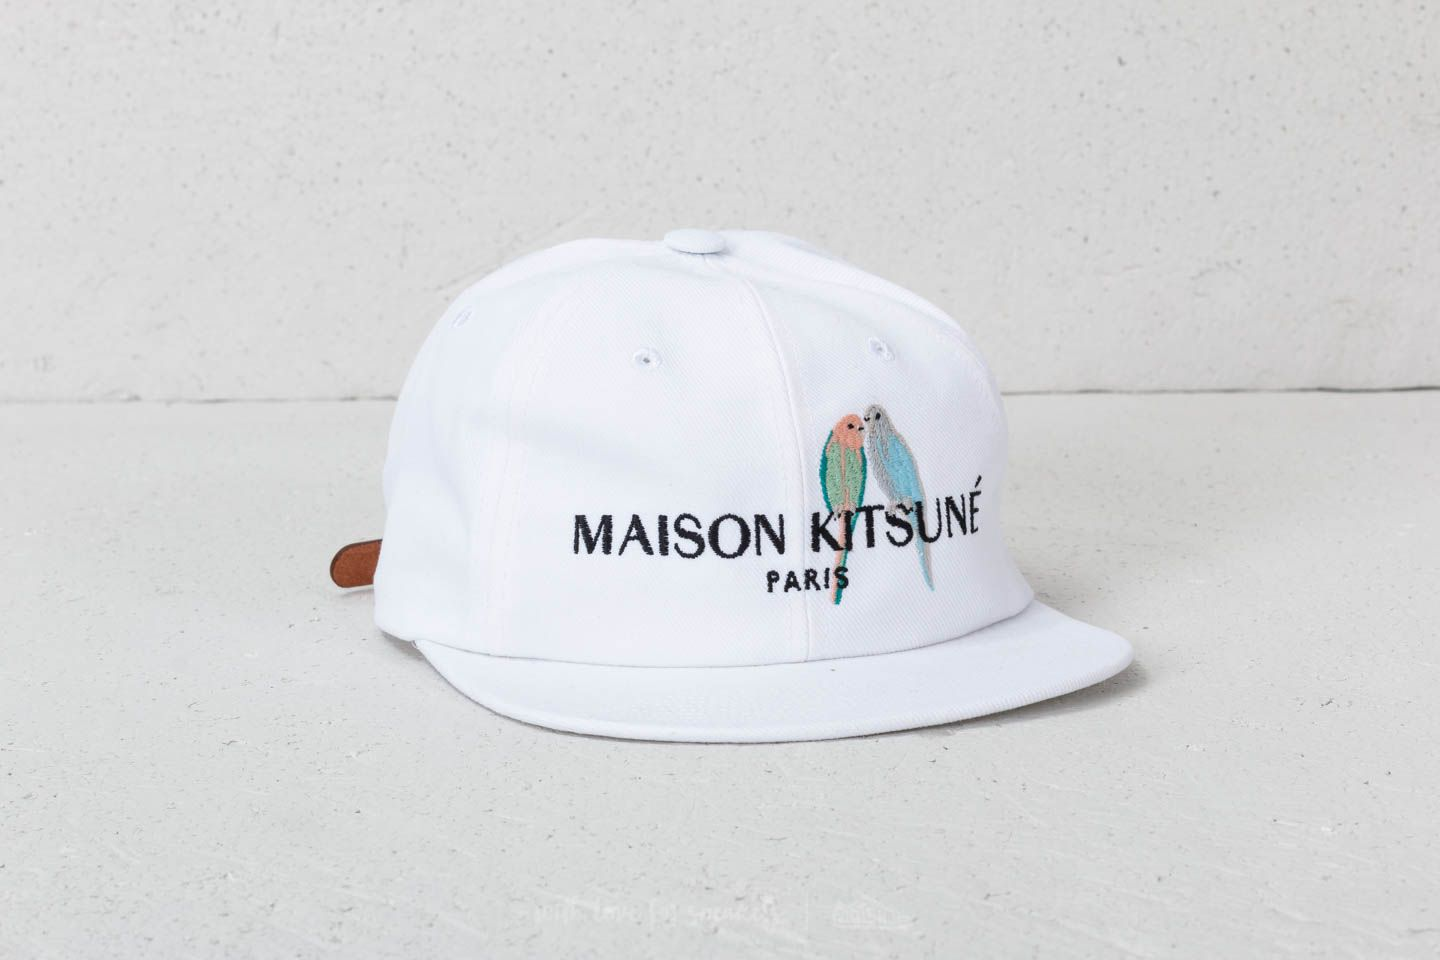 MAISON KITSUNÉ Love Birds Embroidery Baseball Cap White ... f016da5d4ac